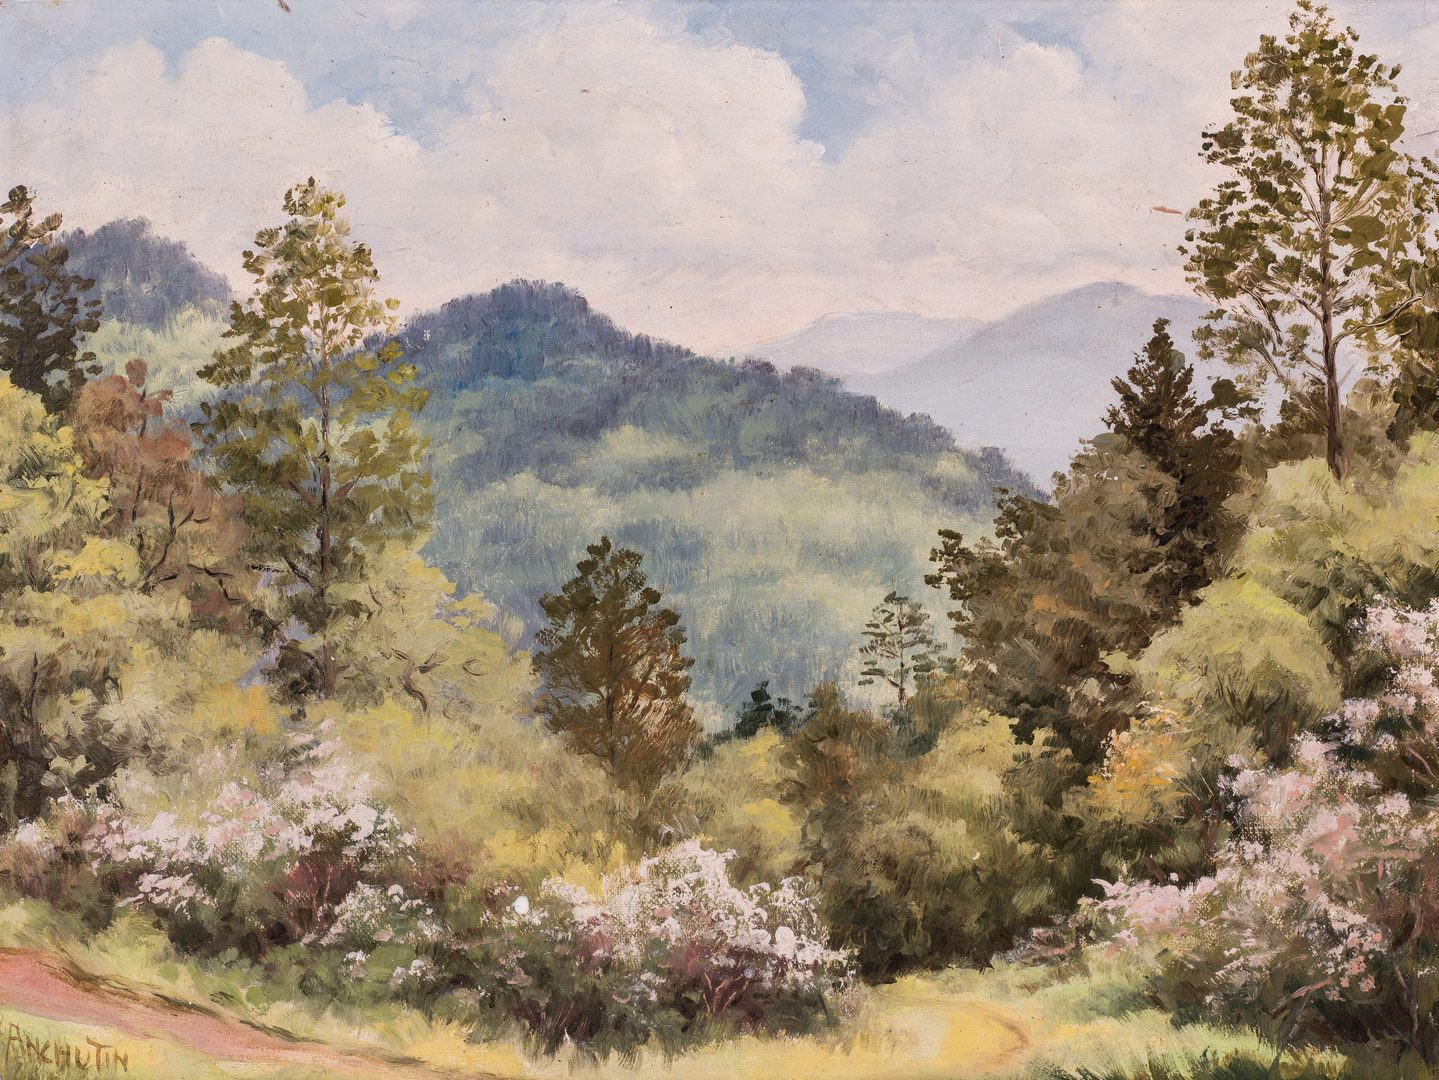 Lot 100: 2 Anchutin, O/B, Smoky Mountain Landscape Paintings